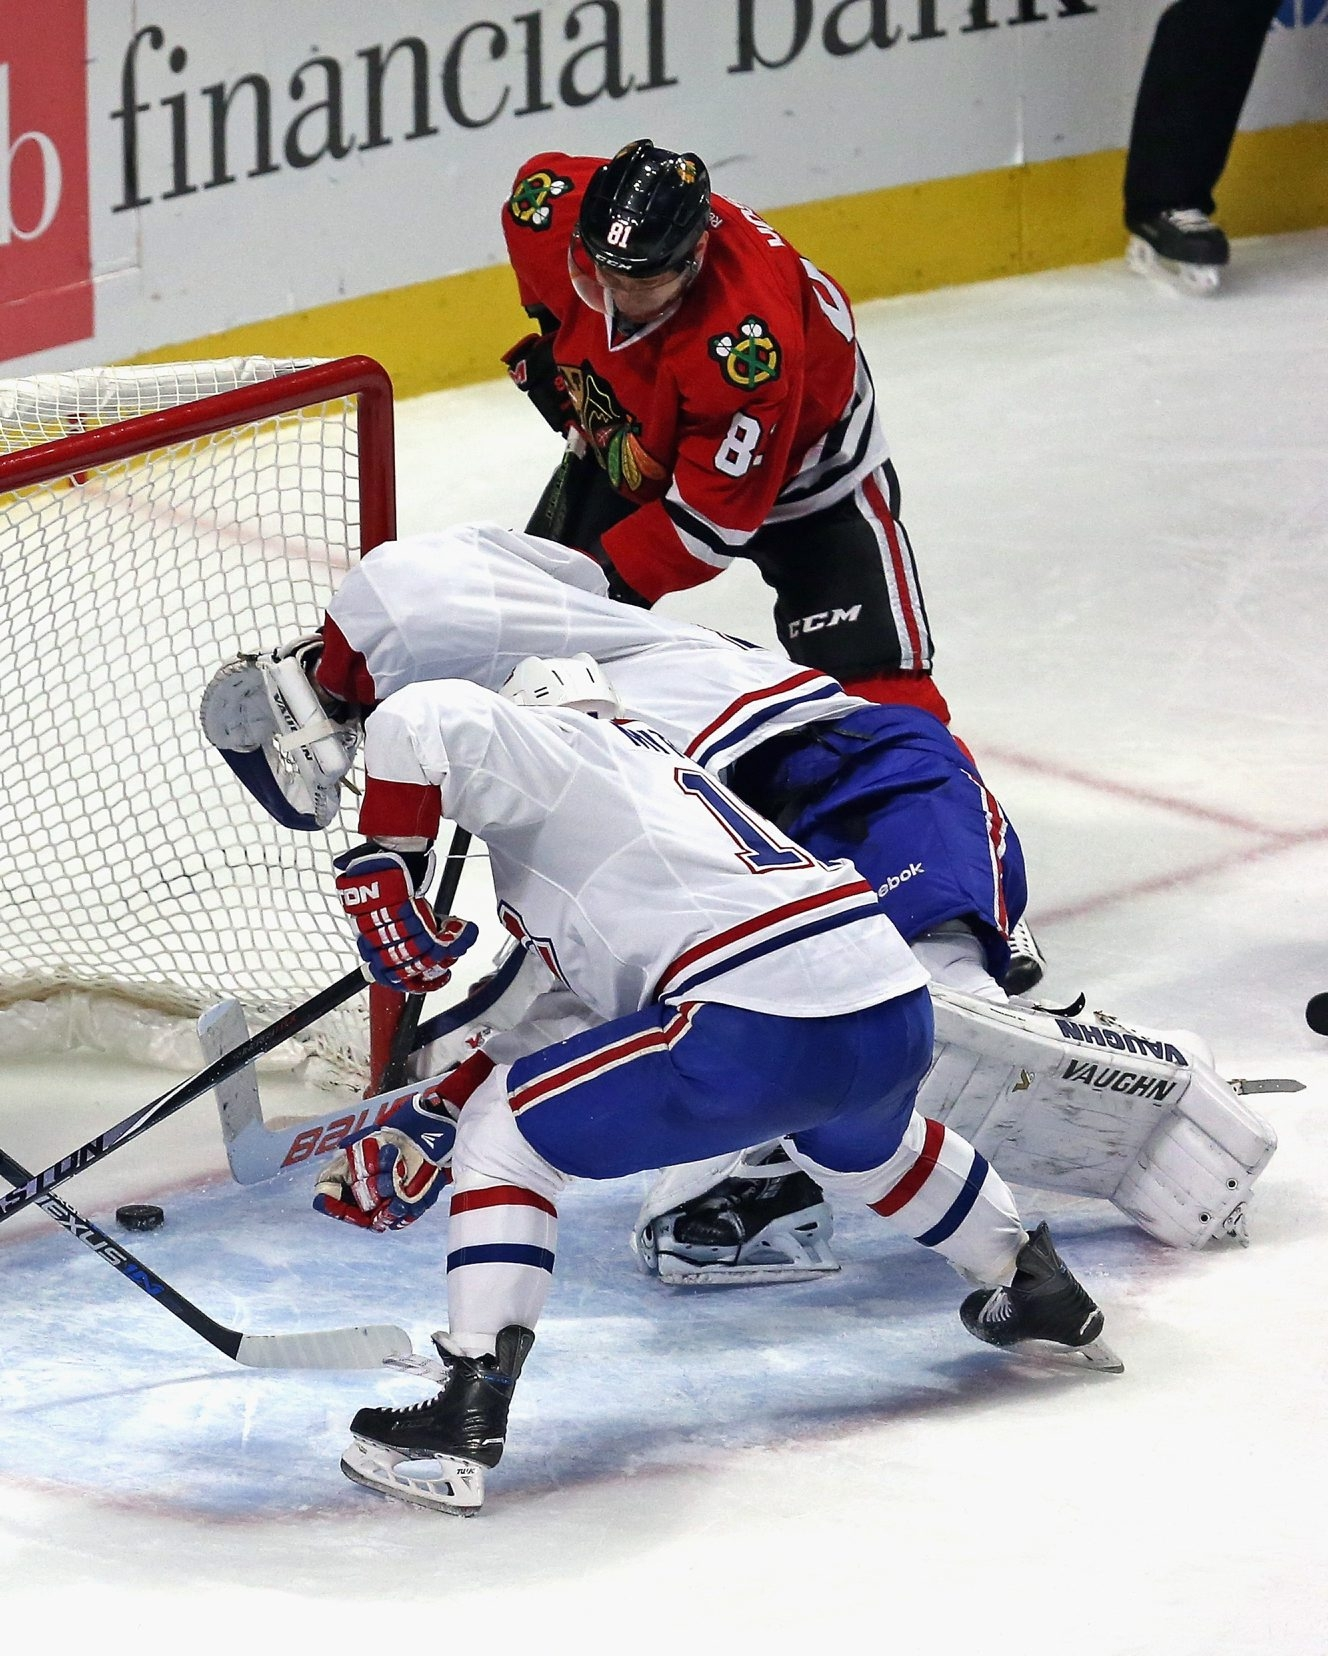 Marian Hossa, right, and the Chicago Blackhawks have to play better than they did during a two-game stretch in the state of Florida if they want to go back on another lengthy winning streak, according to Hossa.